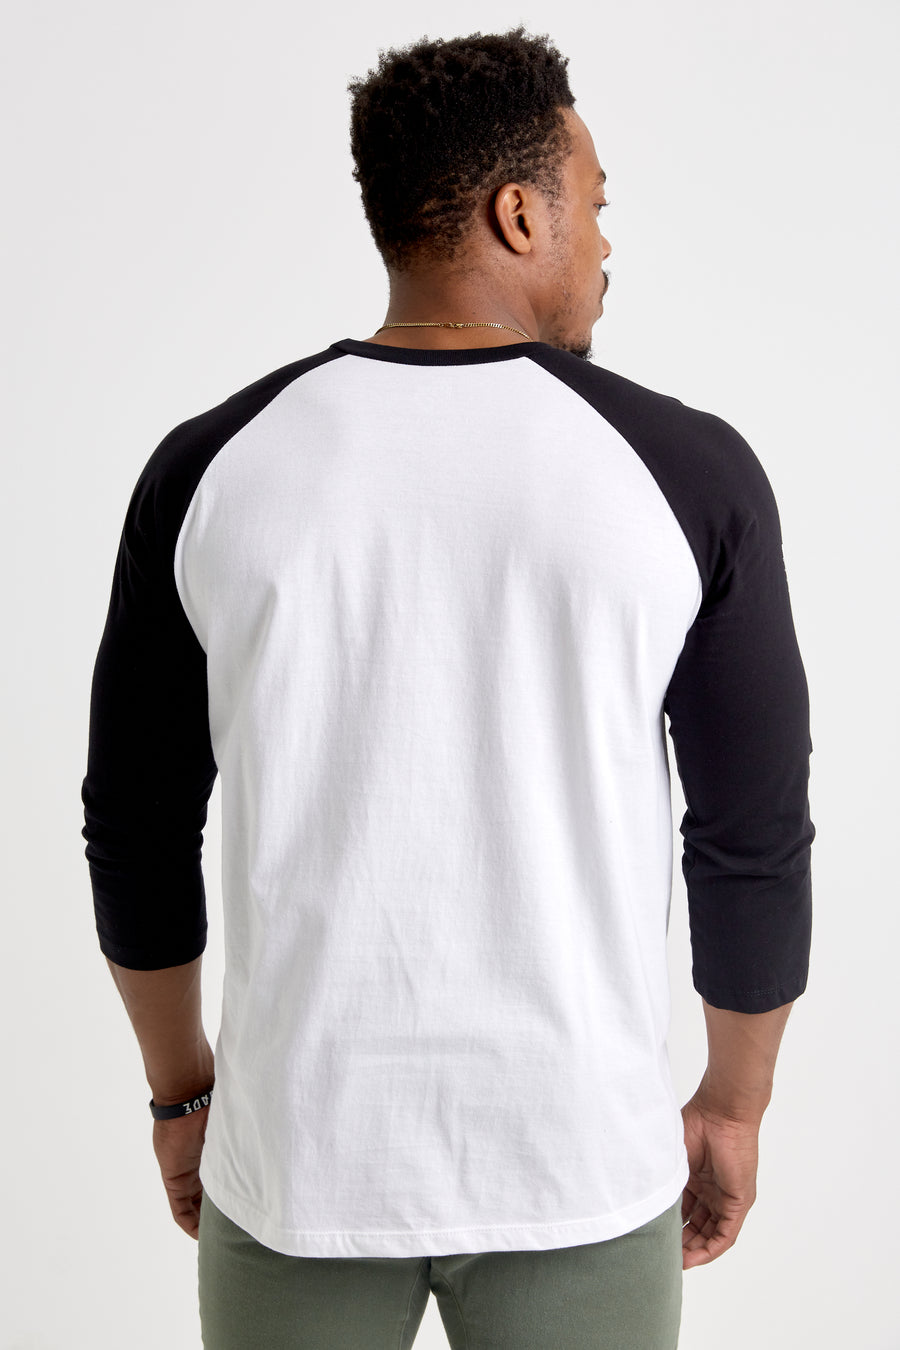 Hometurf - Raglan Tee (White/Black)